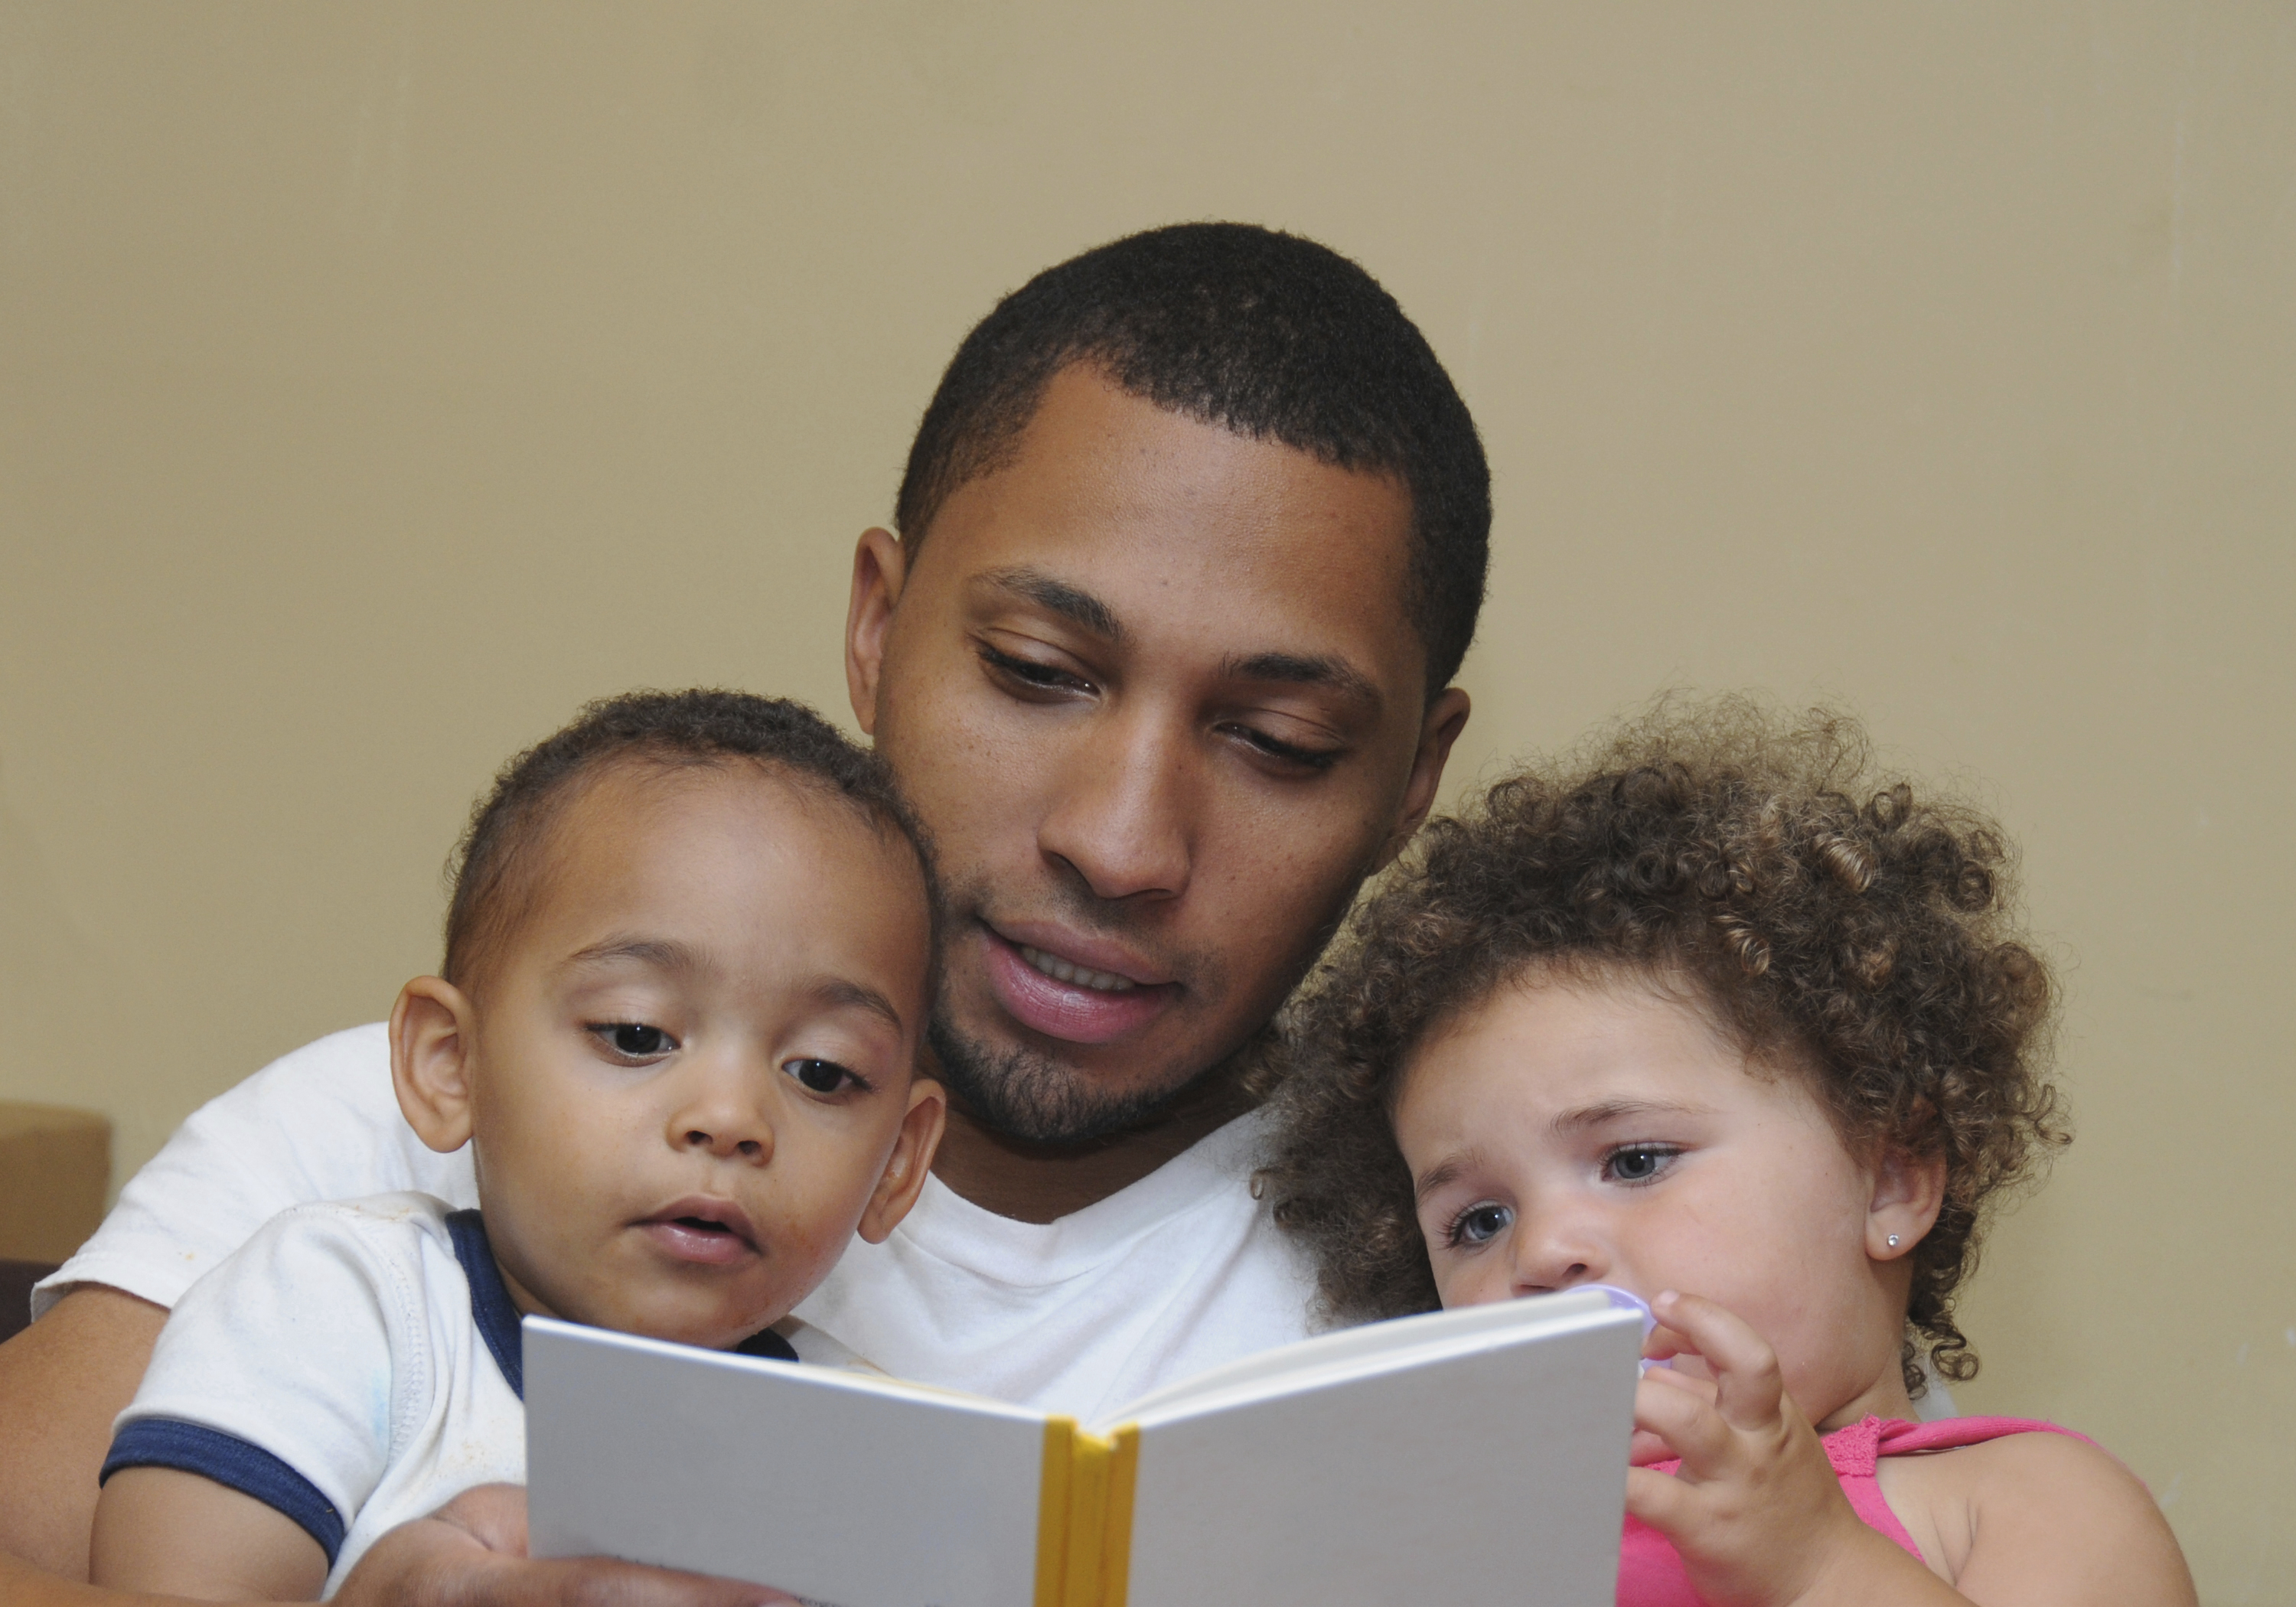 father reading to children on families project volunteers supporting families children's services